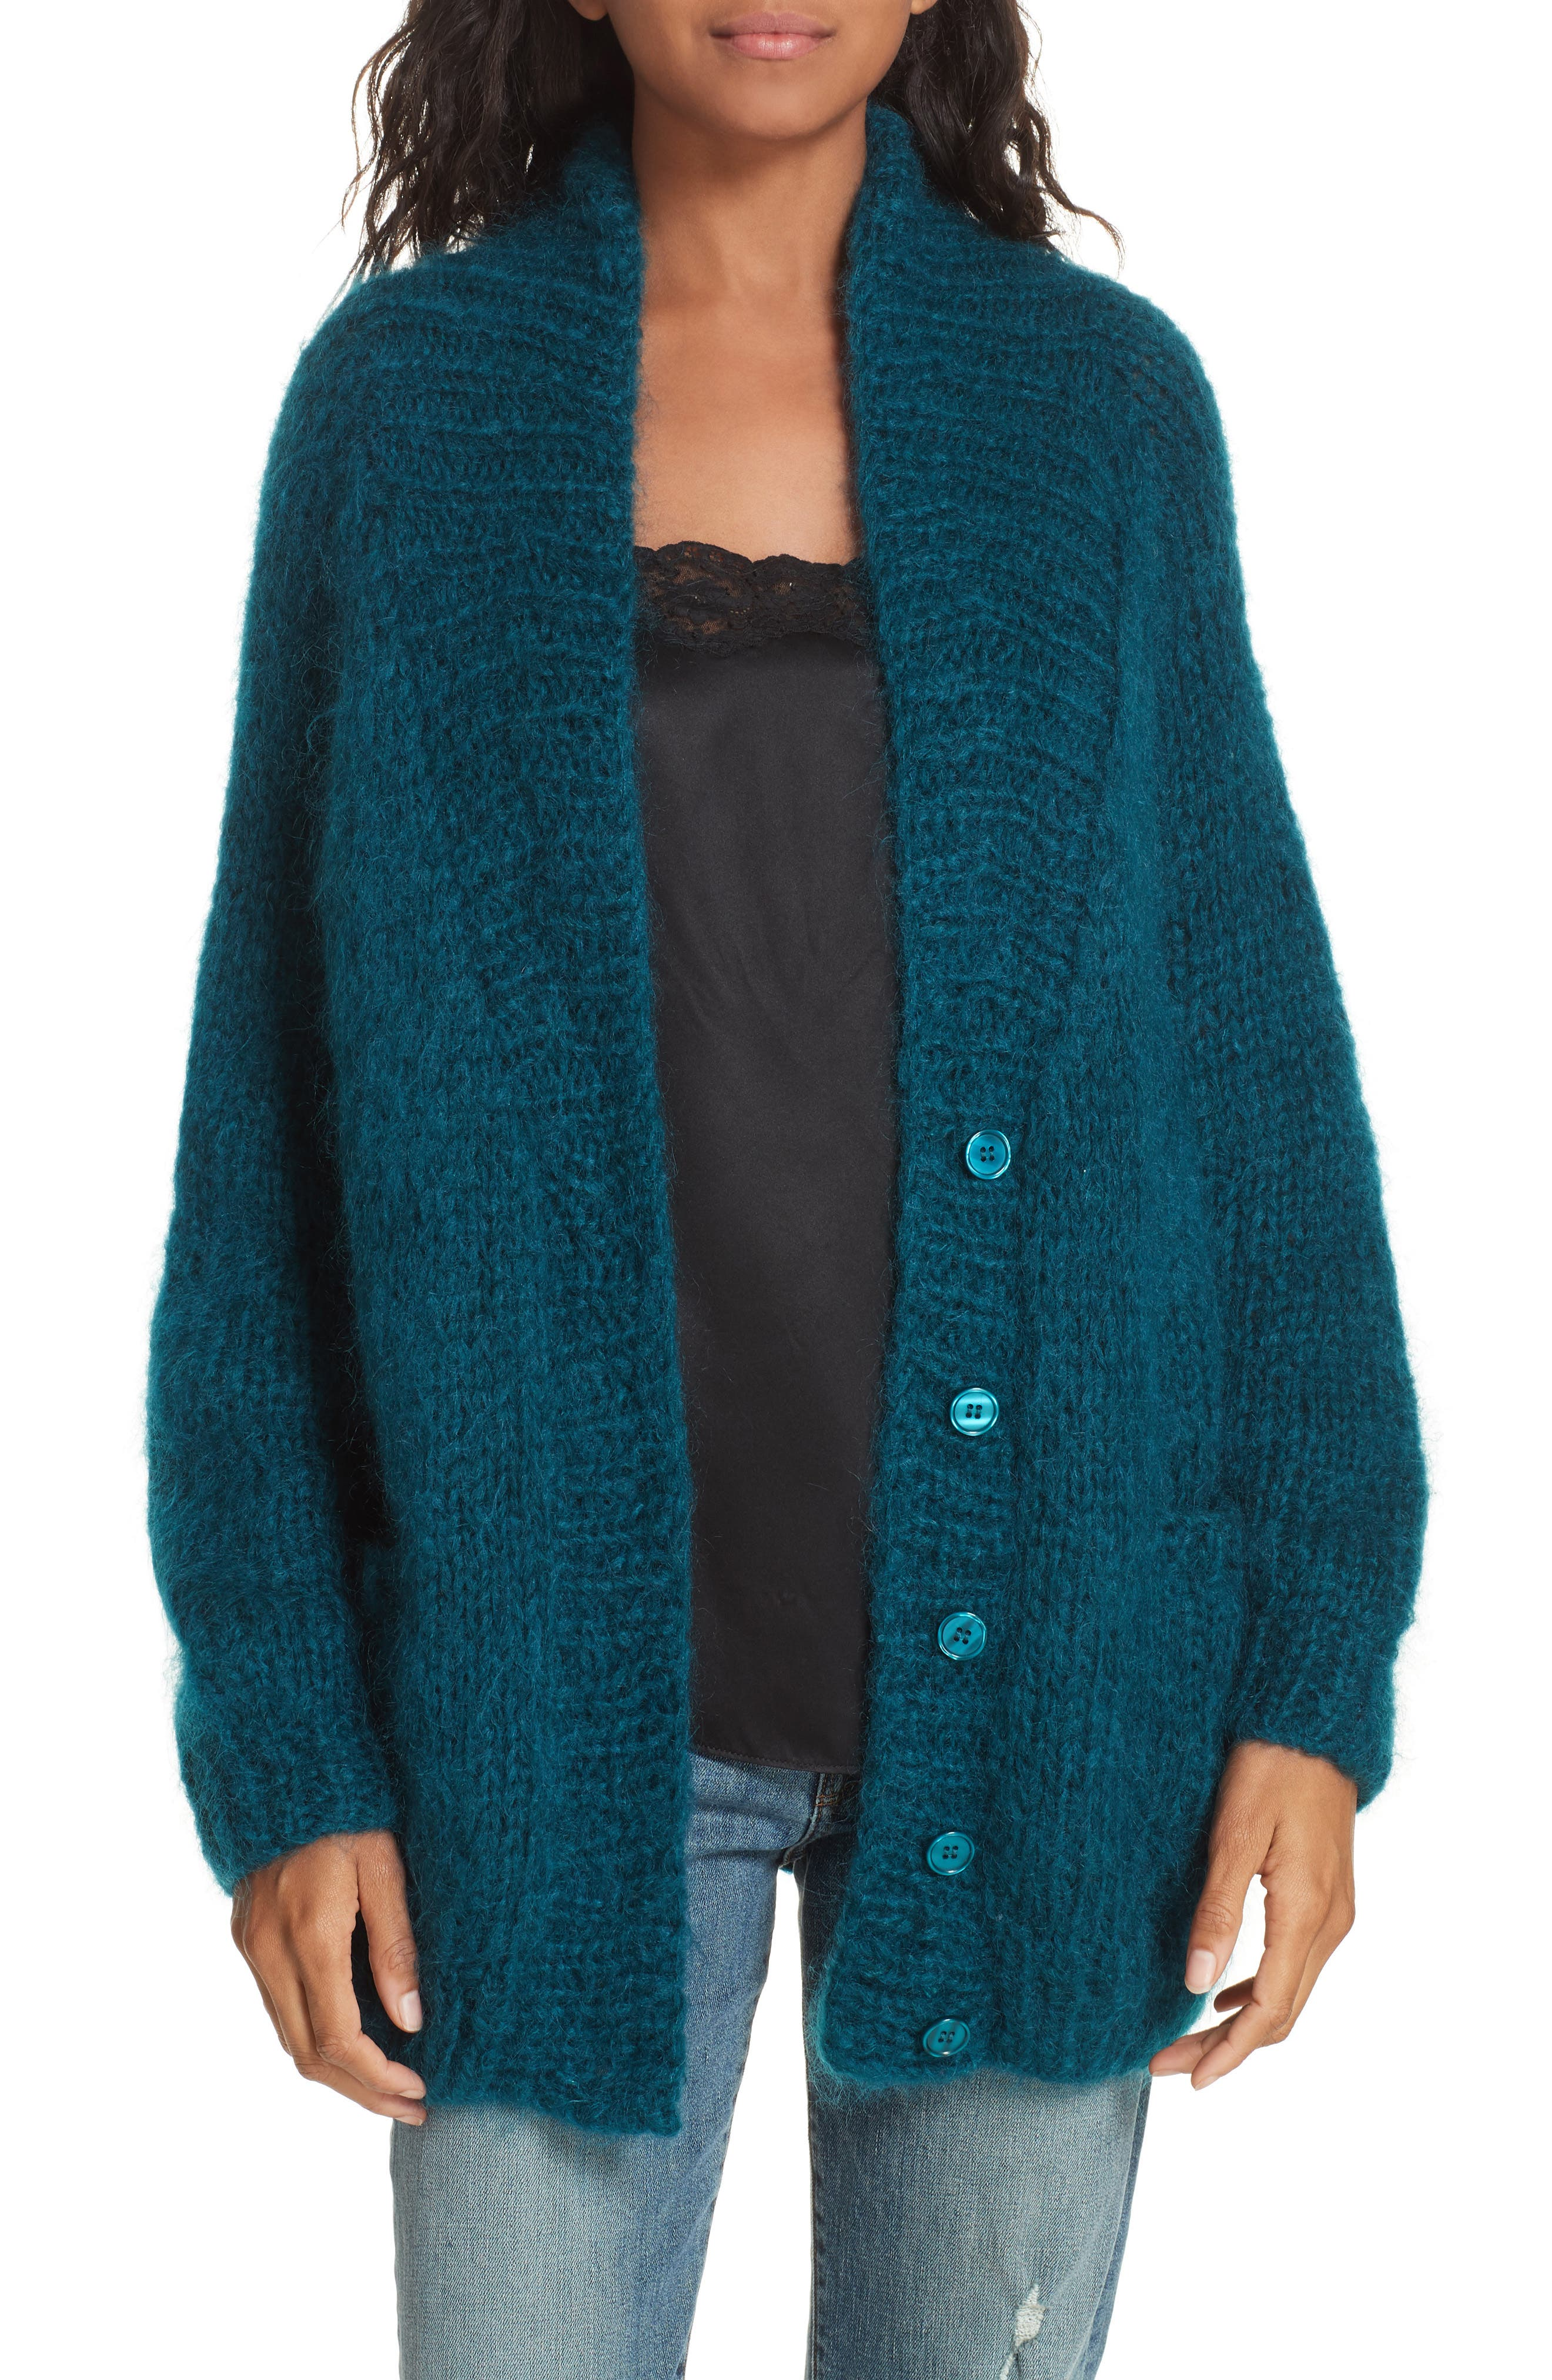 Knitted Cardigan,                             Main thumbnail 1, color,                             440